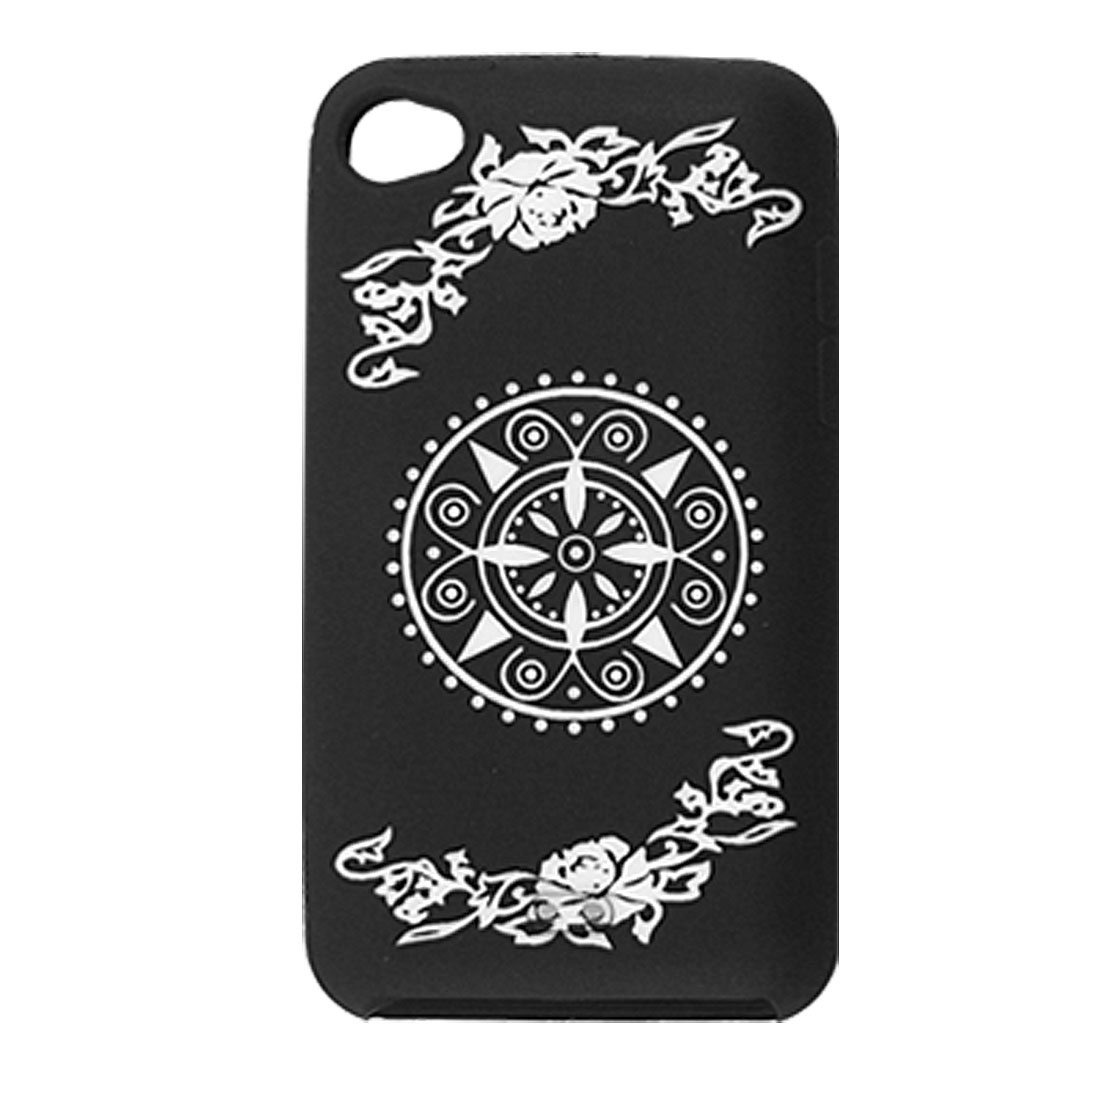 Flower Silicone Protective Case Cover Black for iPod Touch 4G